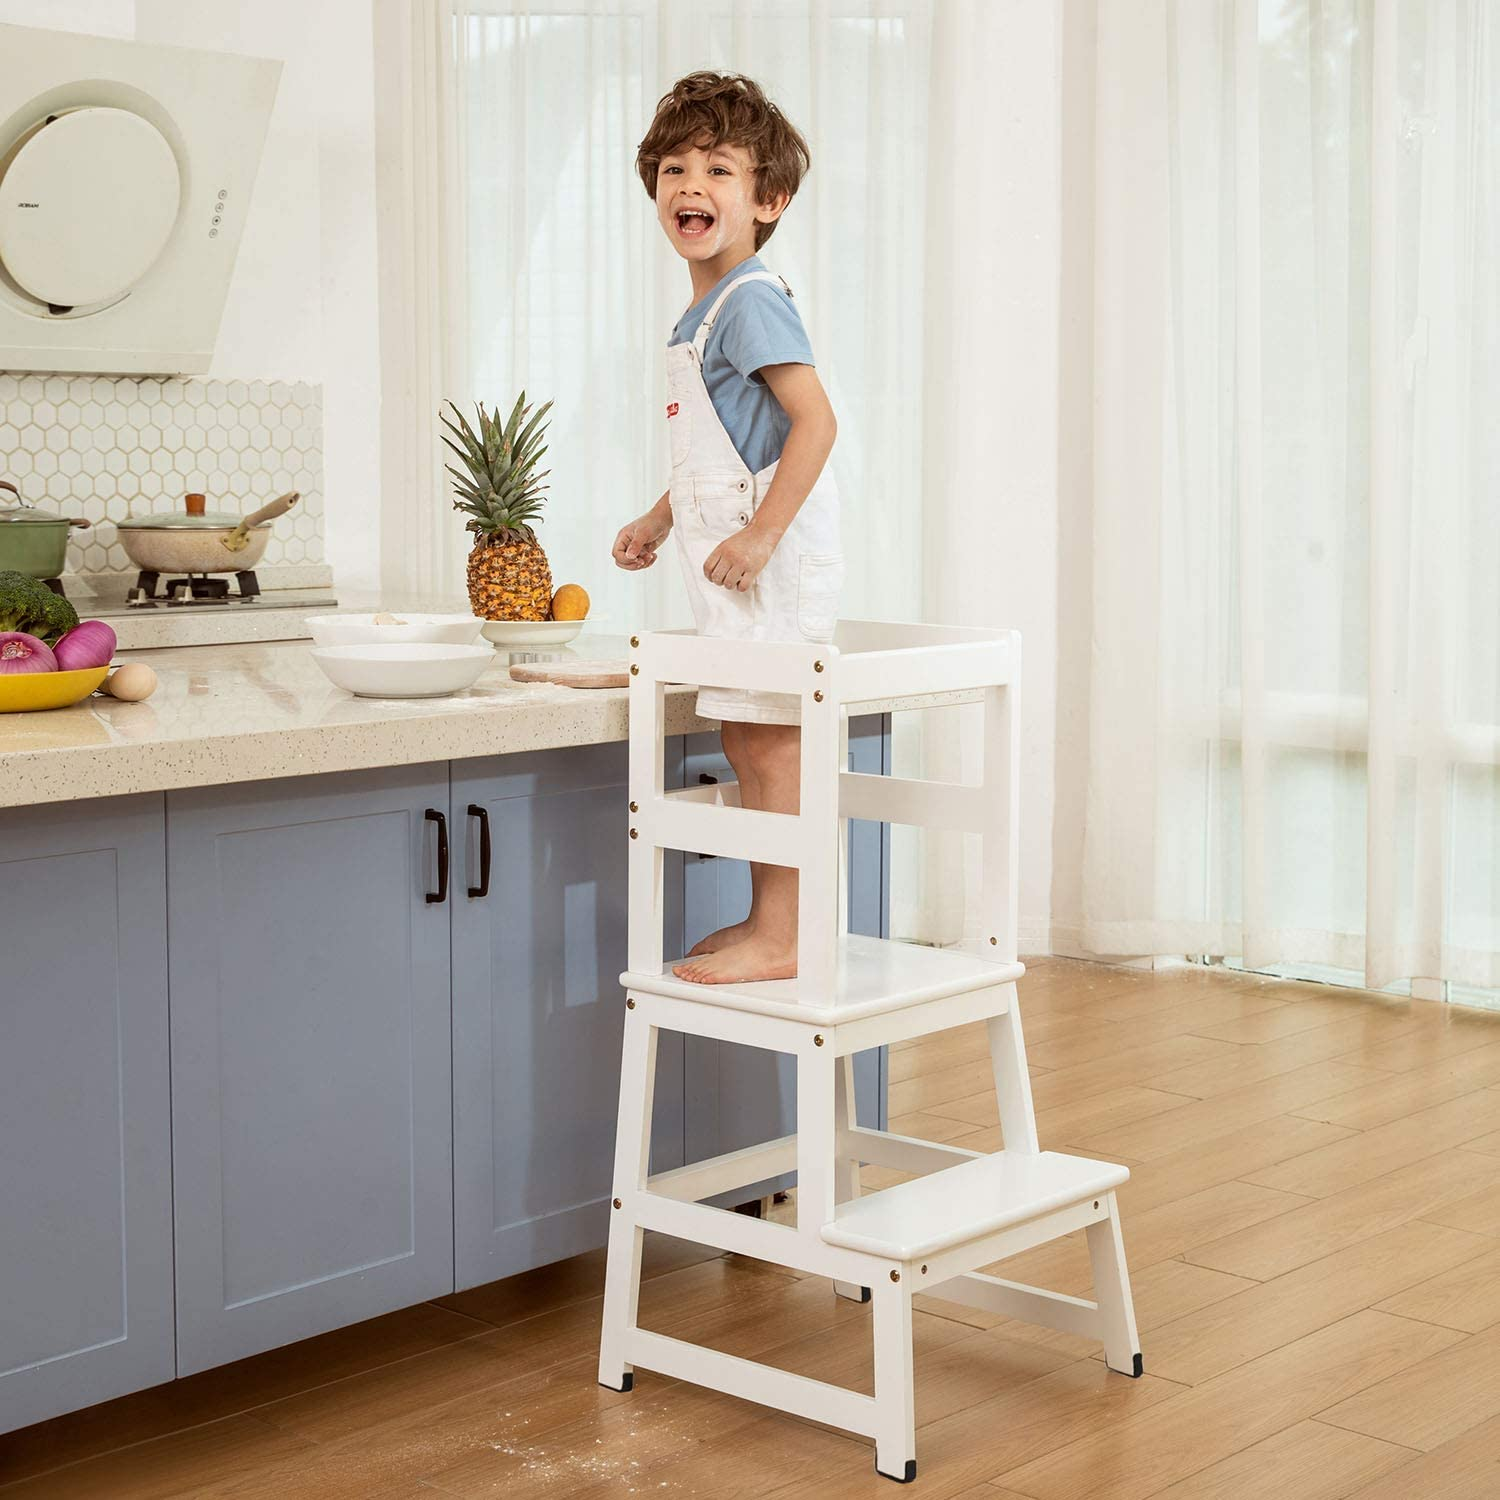 Solid Wood Construction Mangohood Kitchen Helper Step Stool For Kids And Toddlers With Safety Rail Children Standing Tower For Kitchen Counter Mothers Helper Kids Learning Stool Natural Furniture Baby Vit Edu Au